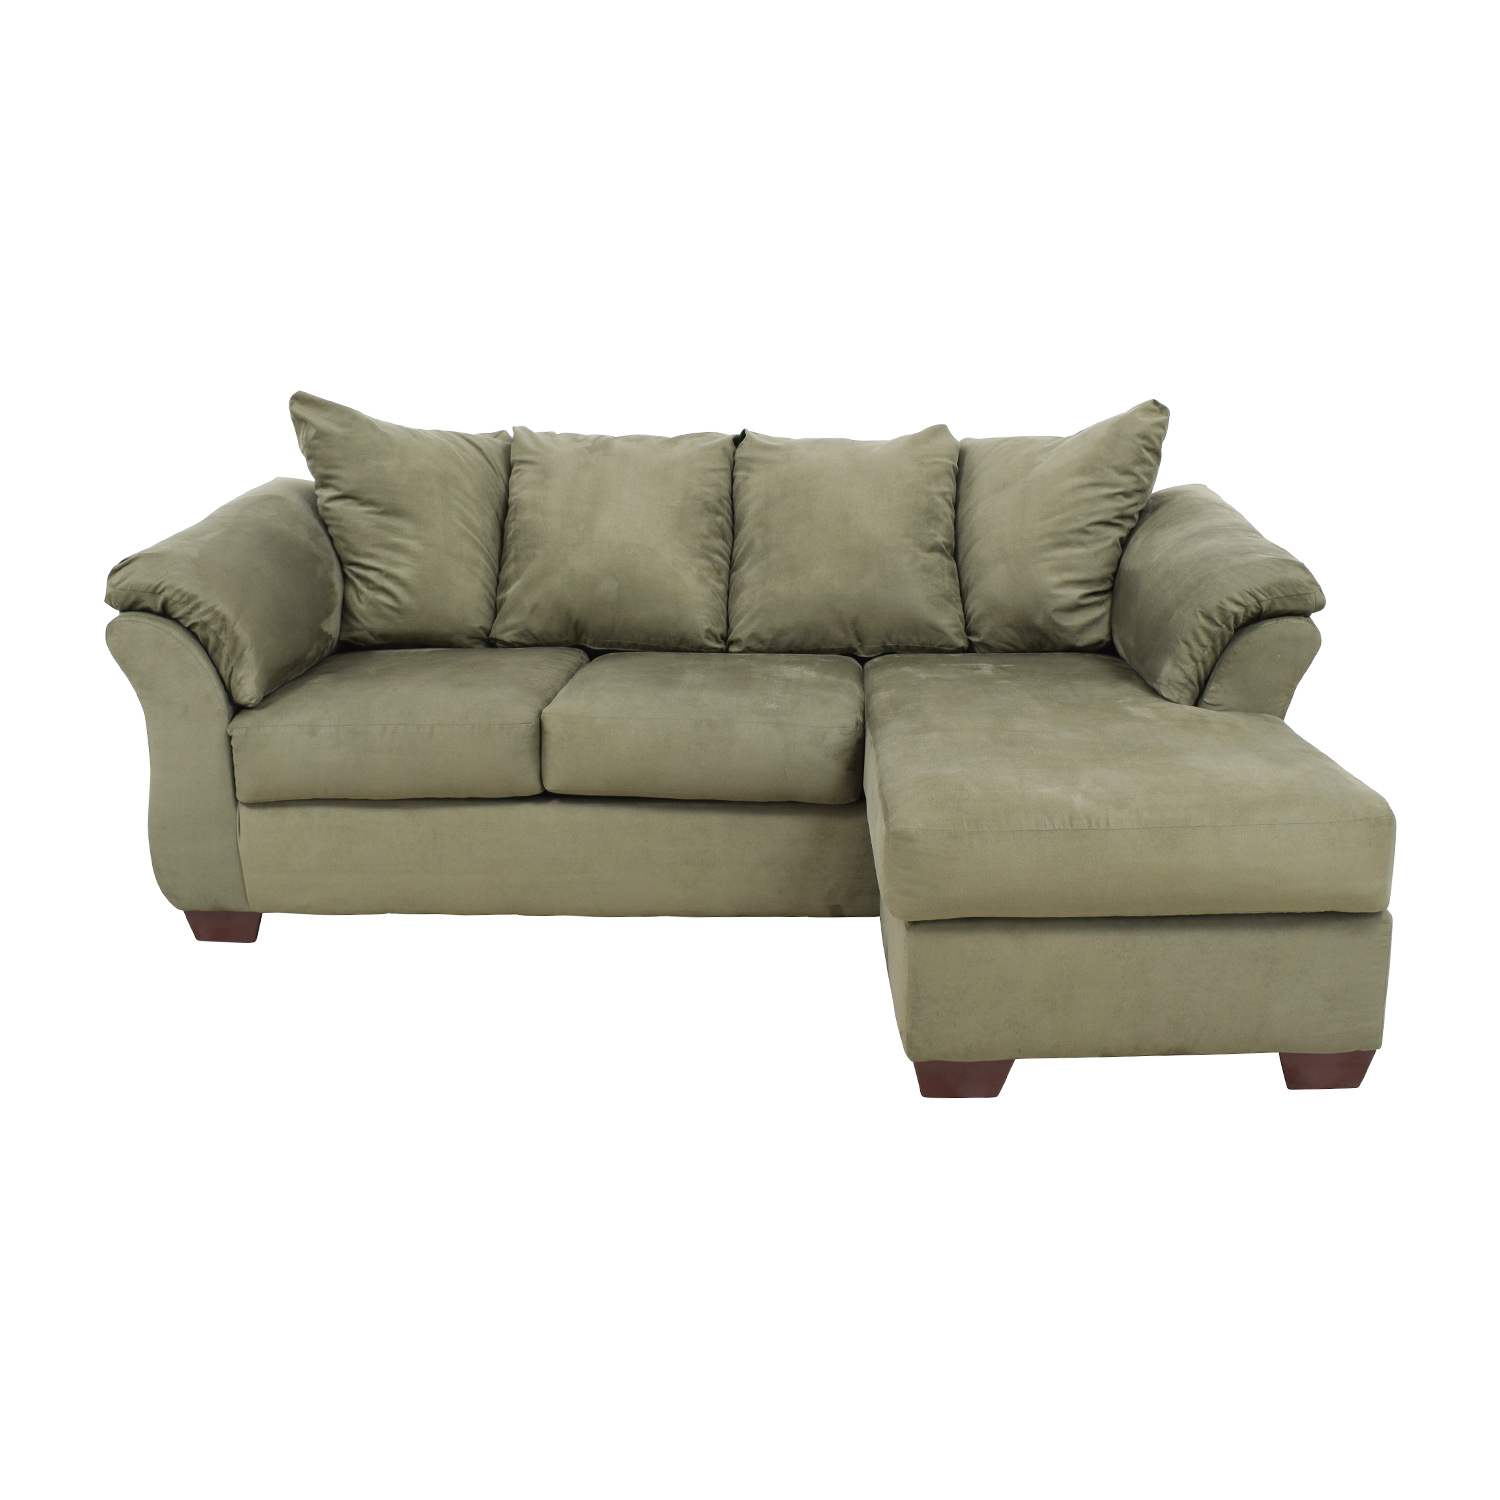 raymour and flanigan raymour and flanigan green l shaped sectional